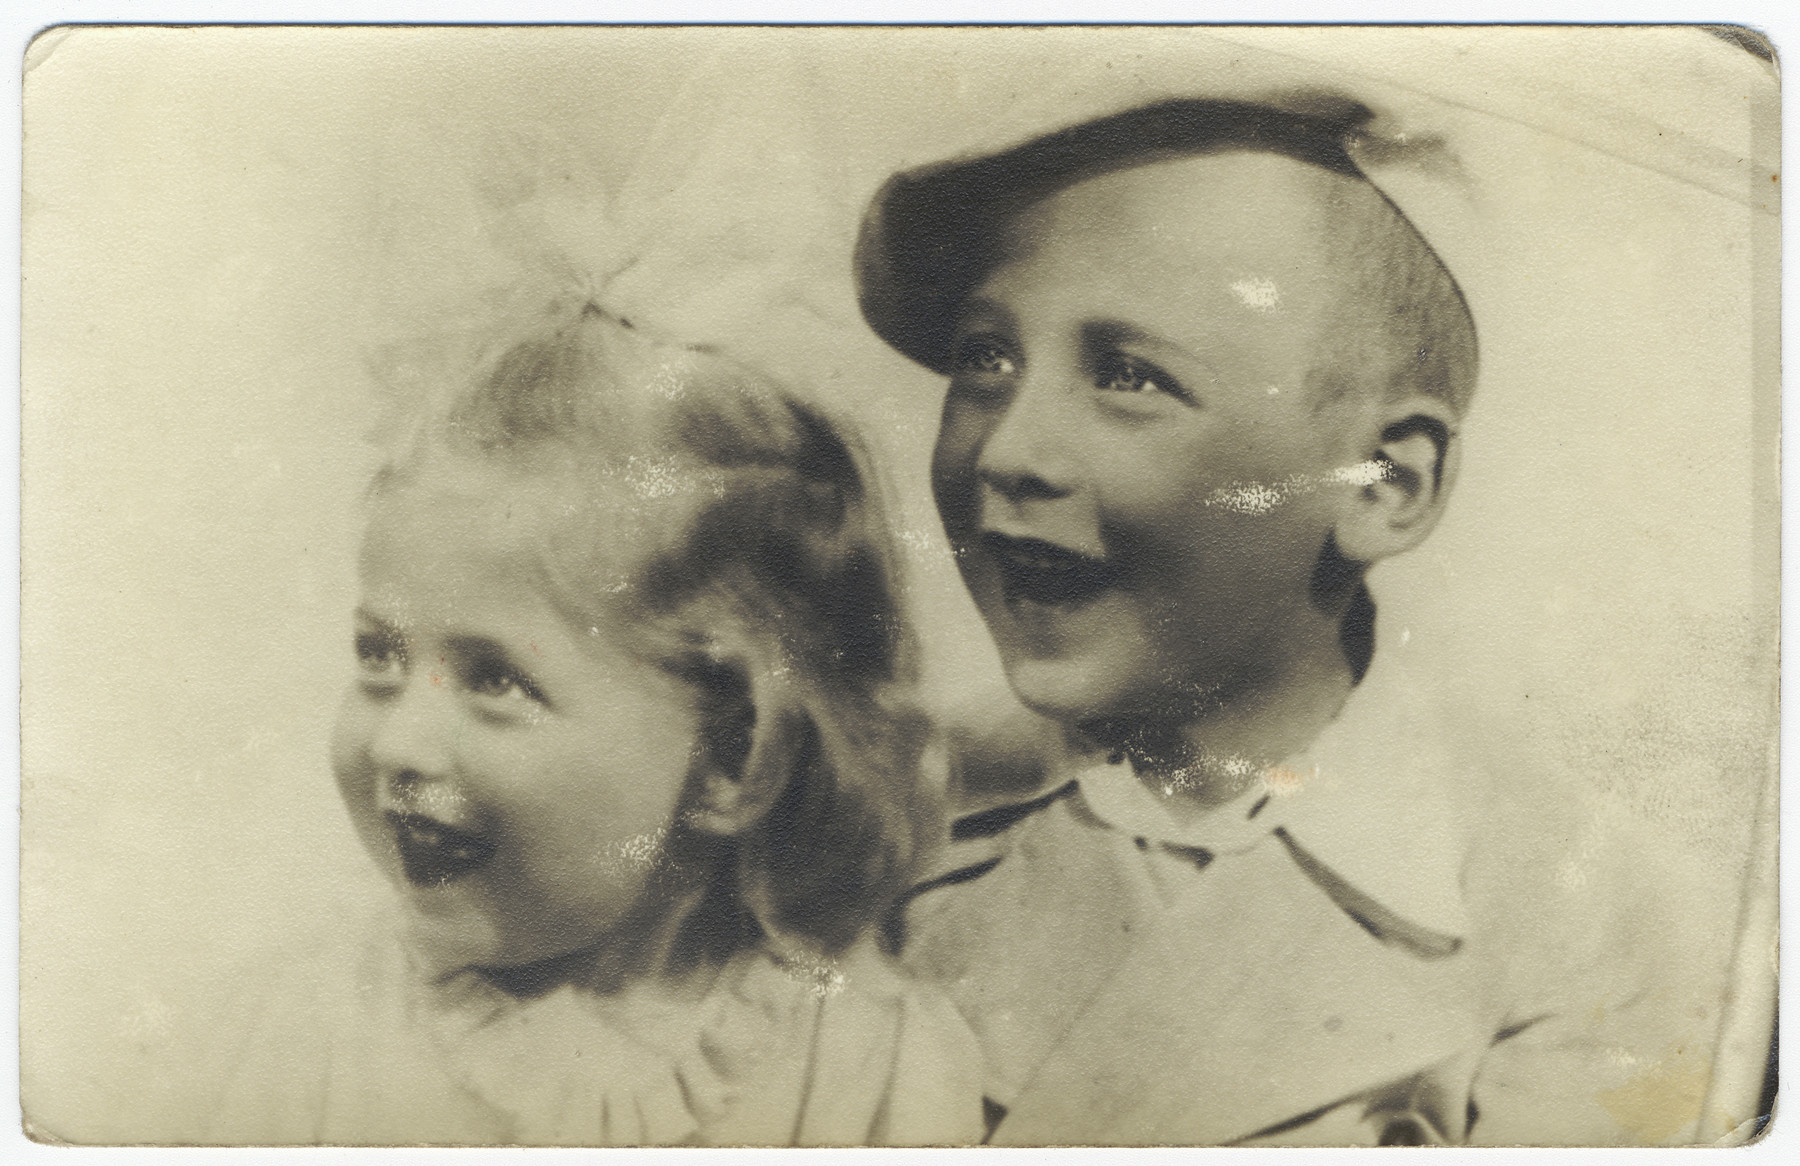 Portrait of two Jewish children who perished in the Holocaust.  Pictured are Gyorgy Freedman (b. 7/12/36) and his younger sister.  They are the children of the donor's stepfather.